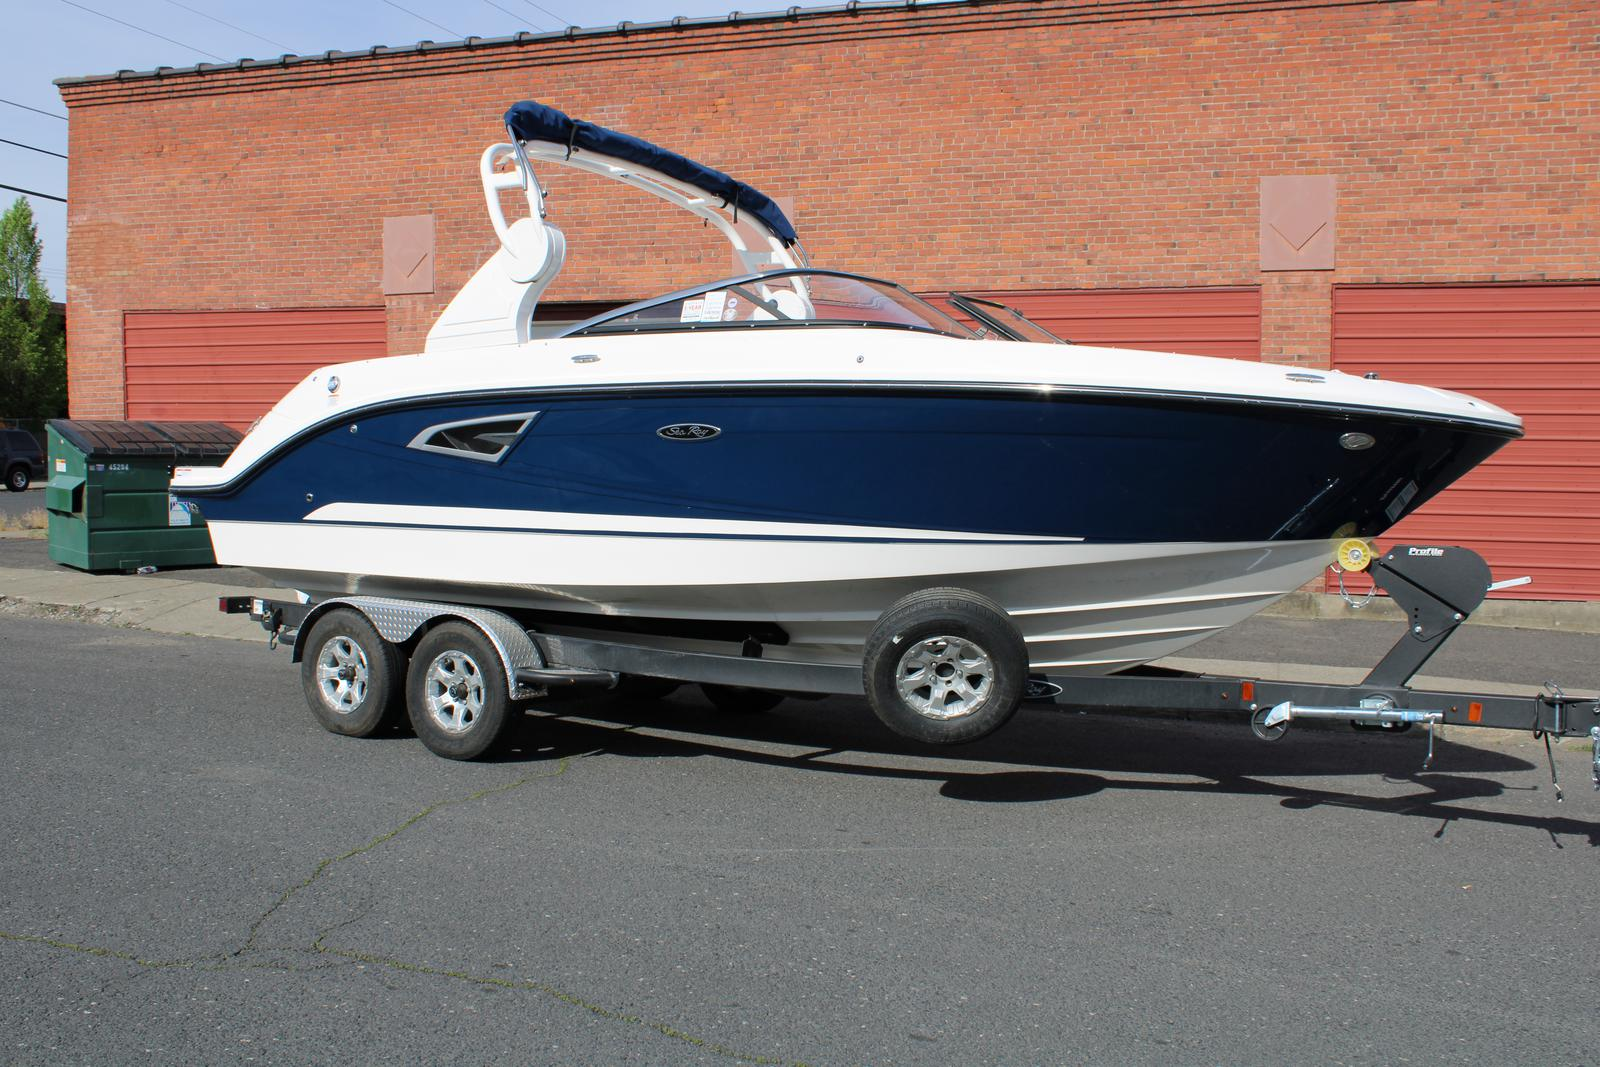 2019 Sea Ray boat for sale, model of the boat is 230 SLX & Image # 2 of 6